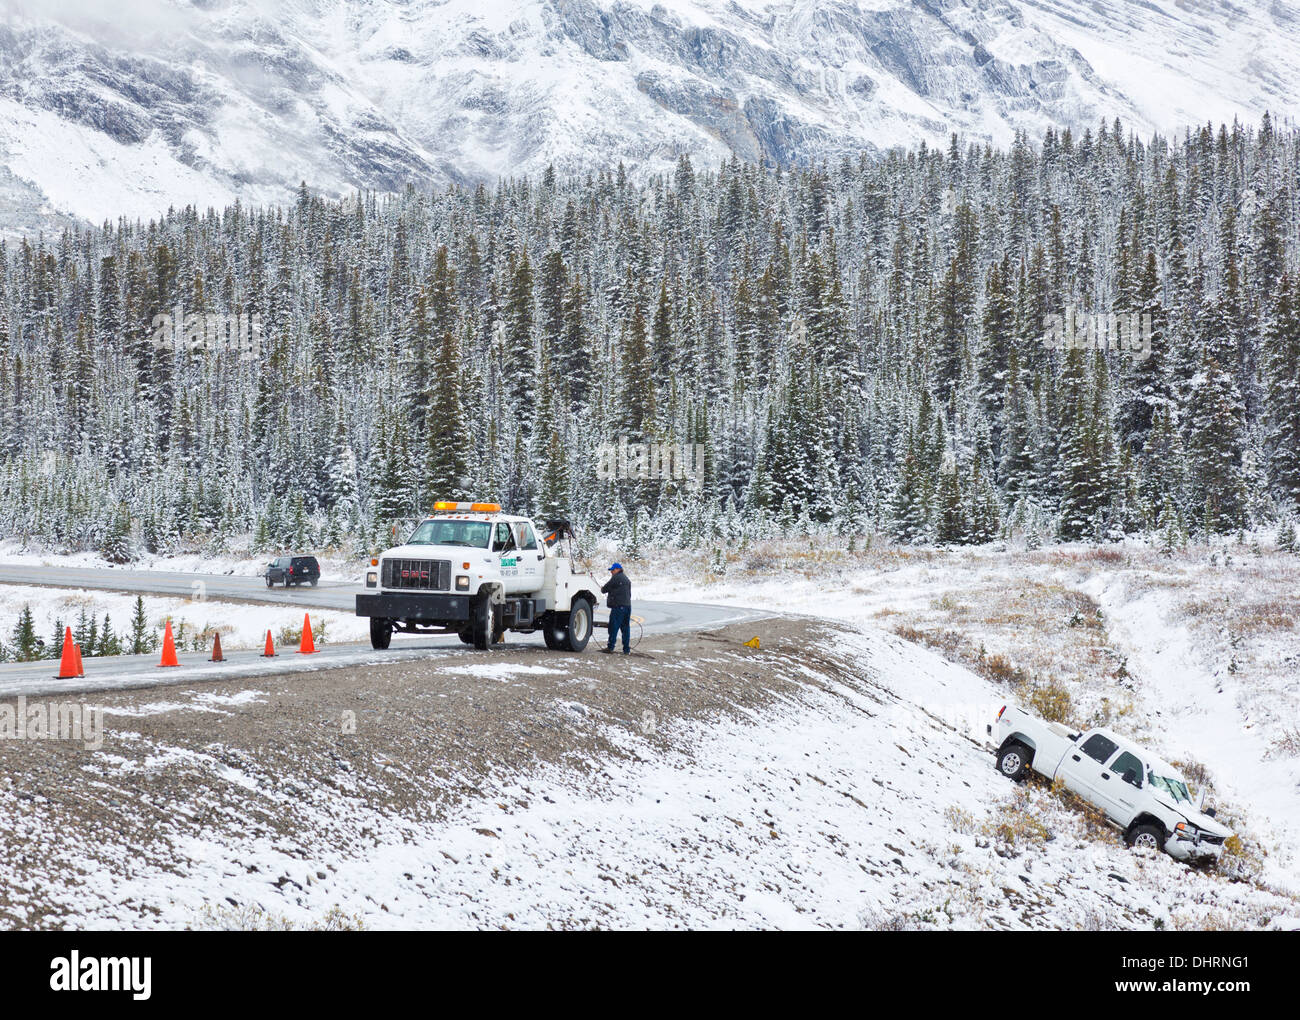 Truck being pulled from ditch after sliding off an icy road Icefields Parkway Banff National Park Alberta Canada - Stock Image